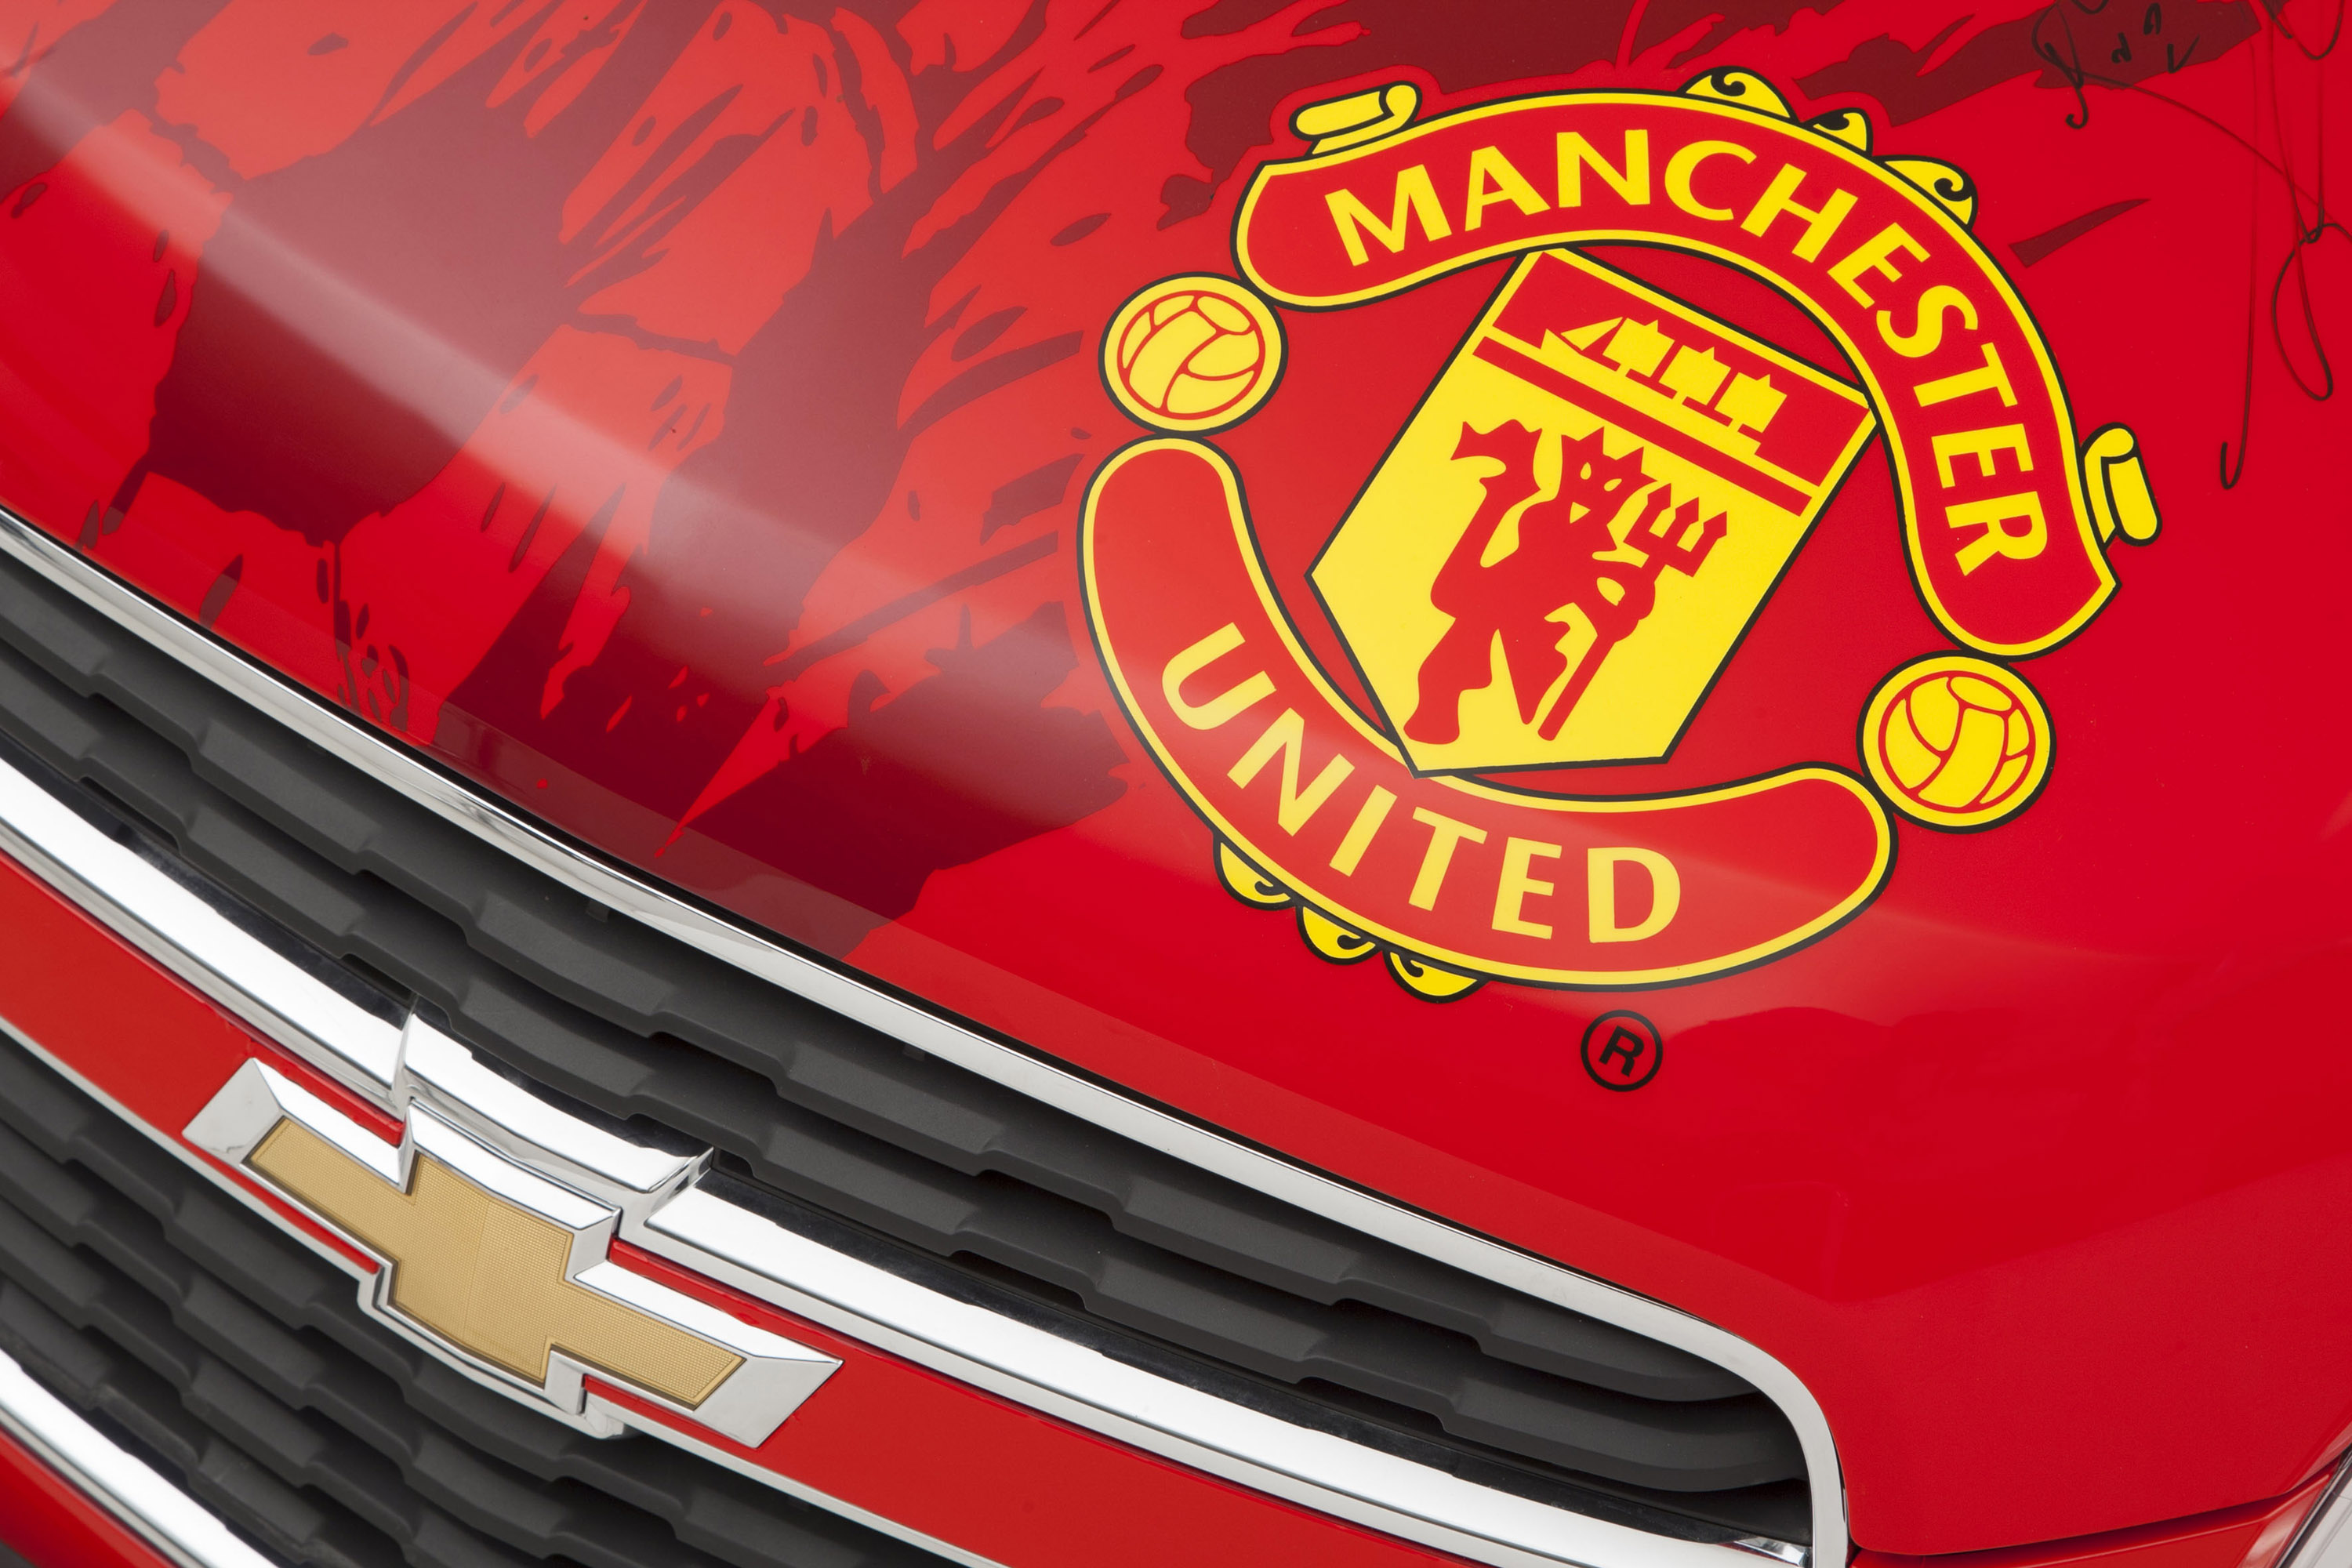 Range Rover Car Hd Wallpaper Download Manchester United Chevrolet Trax Picture 90698